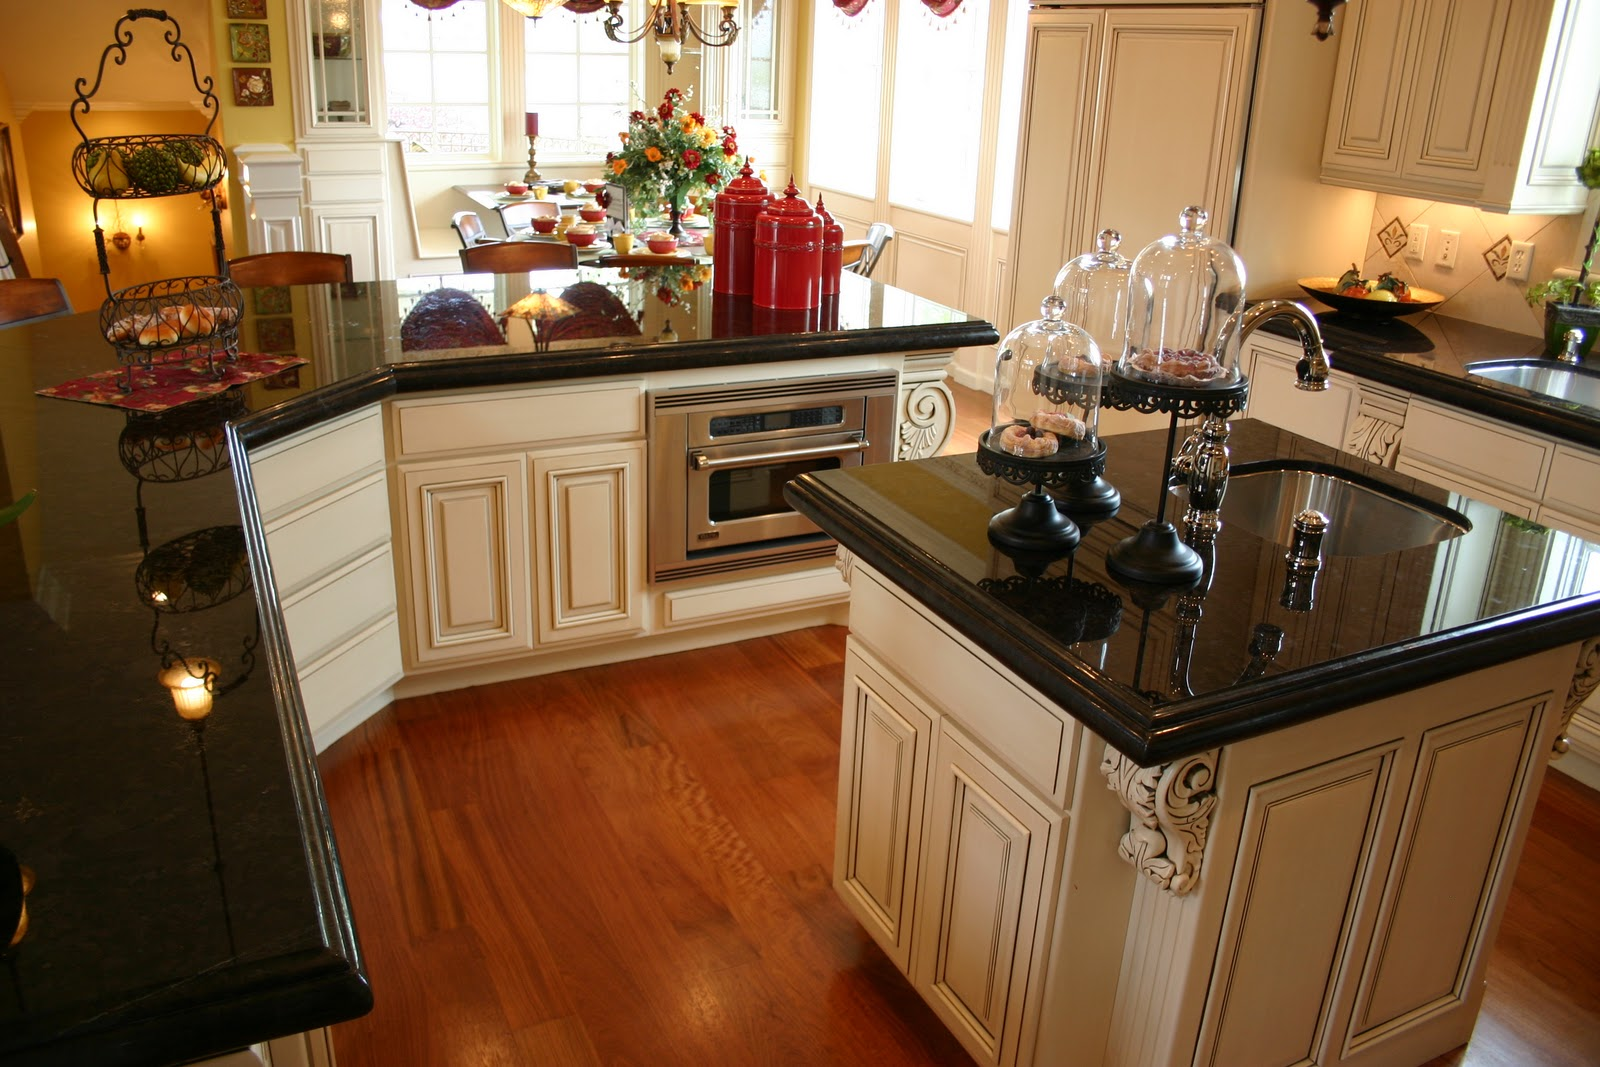 Black Granite Countertops Price : ... Black Granite Price Per Square Foot & Decorating Tips - Countertops HQ